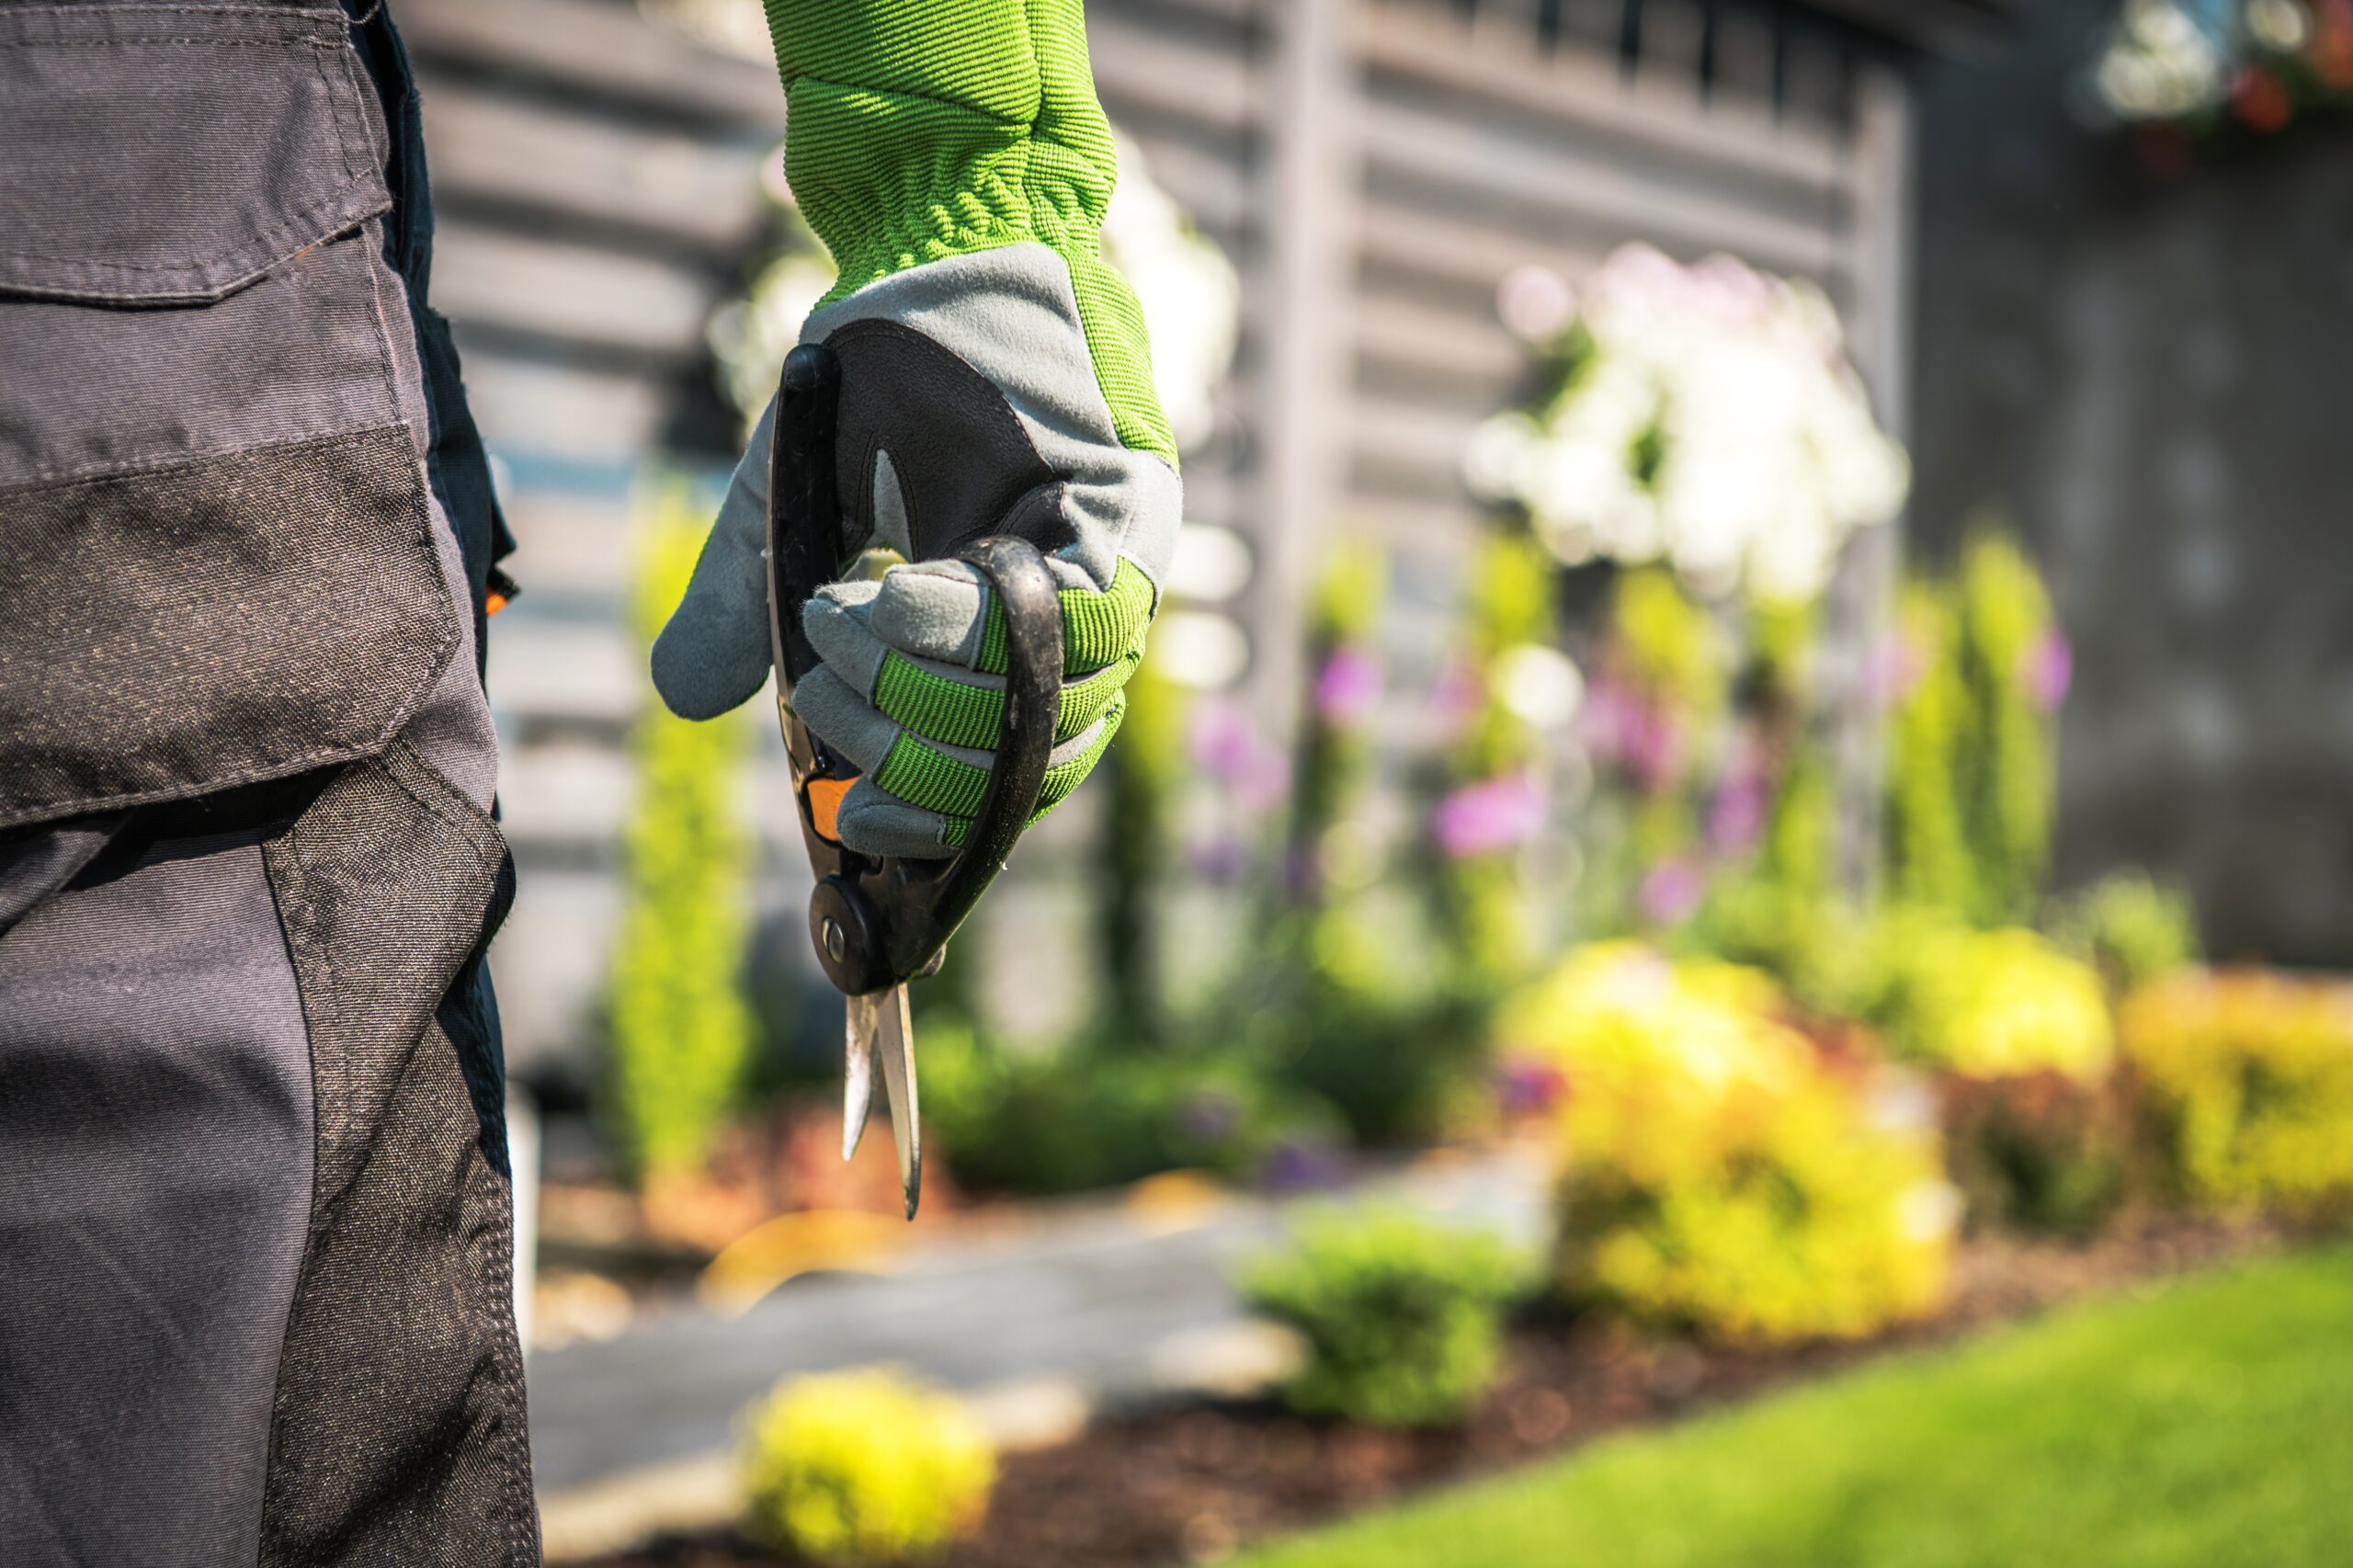 Gardener with Scissors Closeup Photo. Gardening and Landscaping Industry Theme.